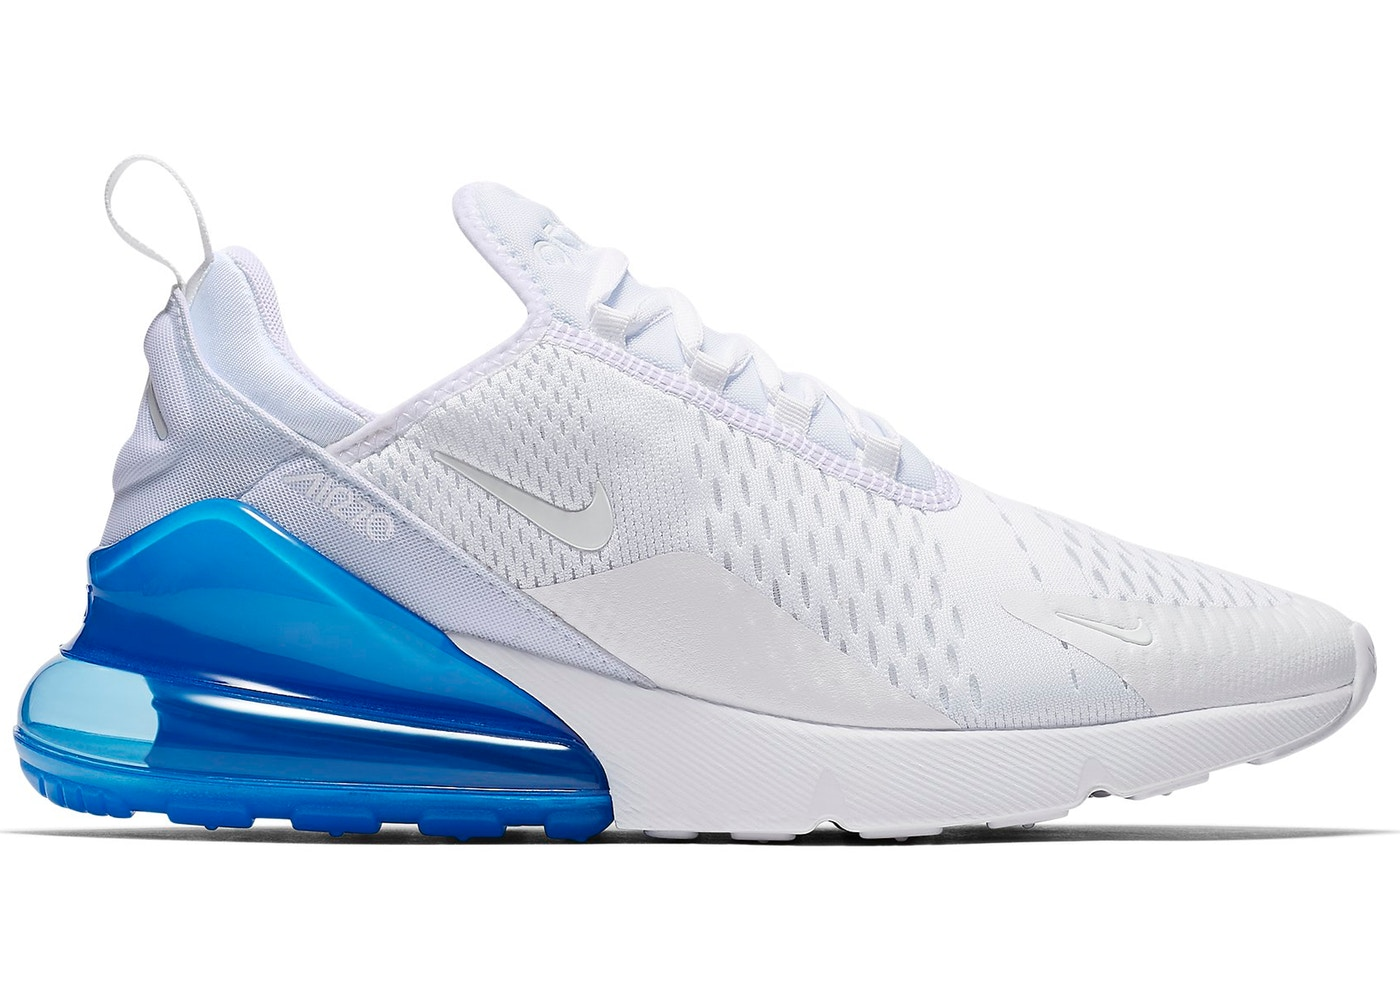 7c15e50606 Air Max 270 White Pack (Photo Blue) - AH8050-105